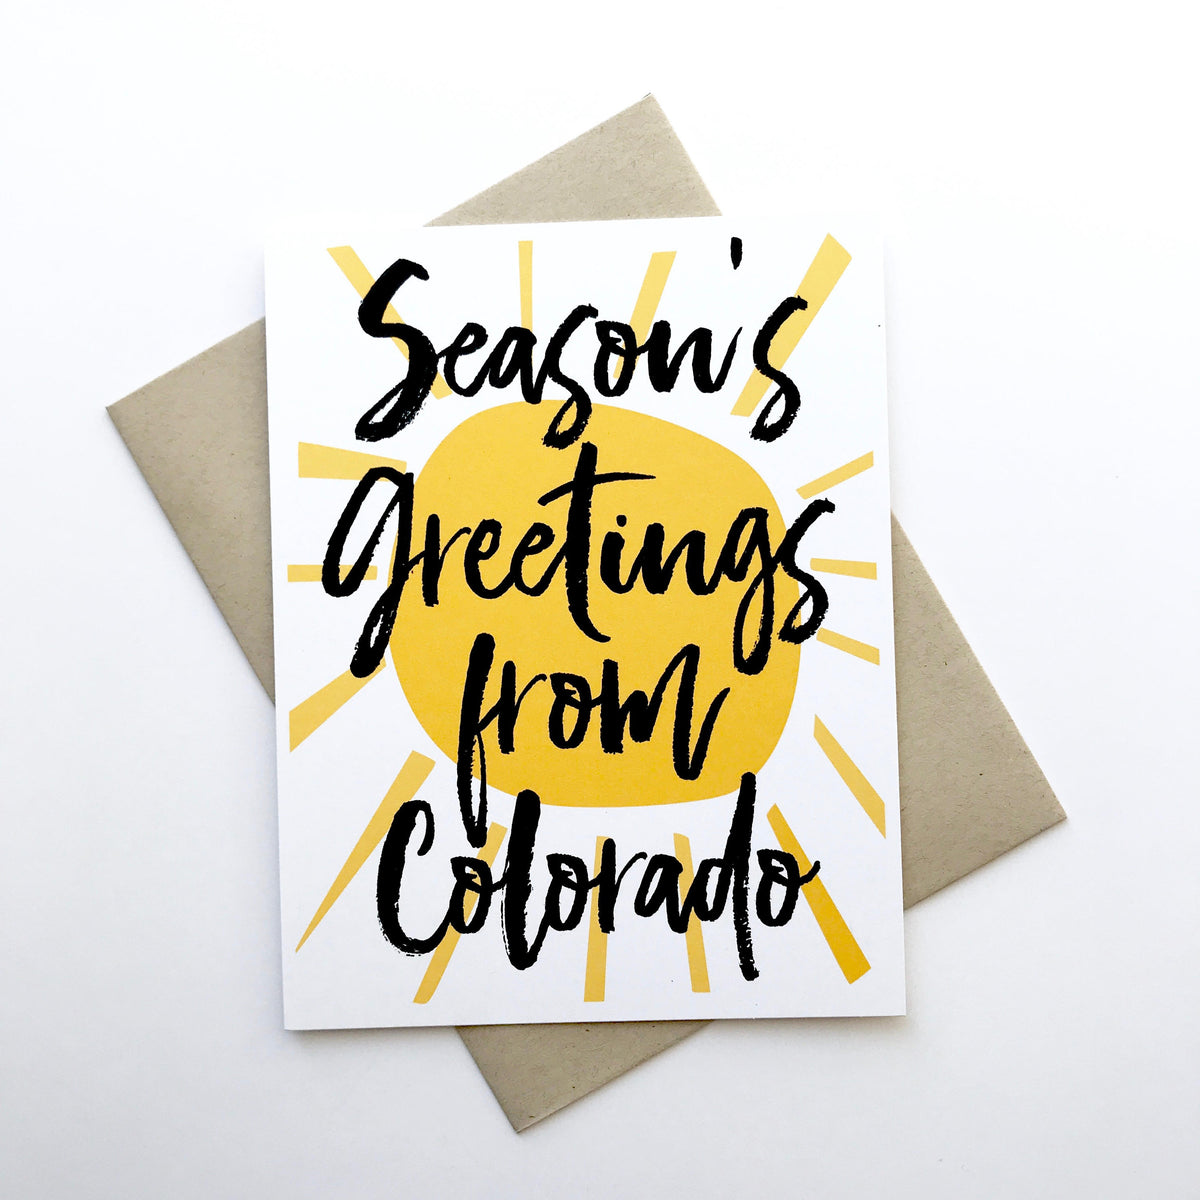 Season's Greetings Colorado Holiday Card